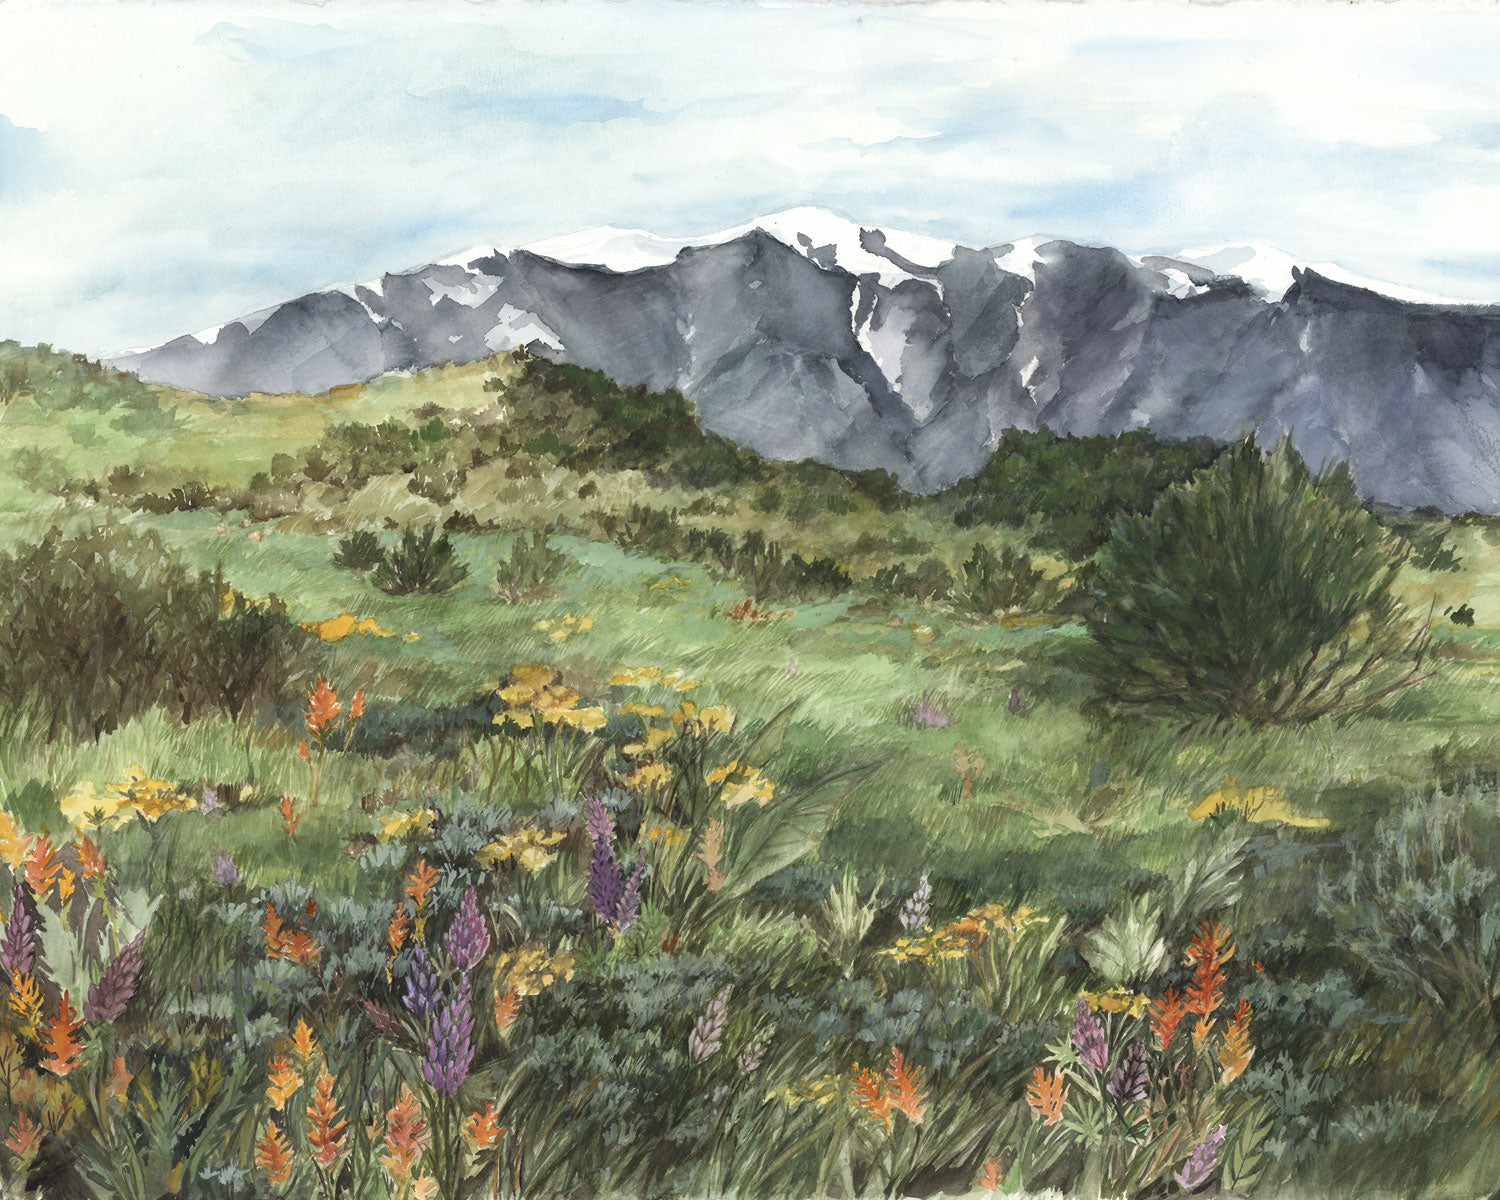 Spanish Peaks Spring Watercolor Print by Artist Bonnie Waugh available in the History Colorado Shop